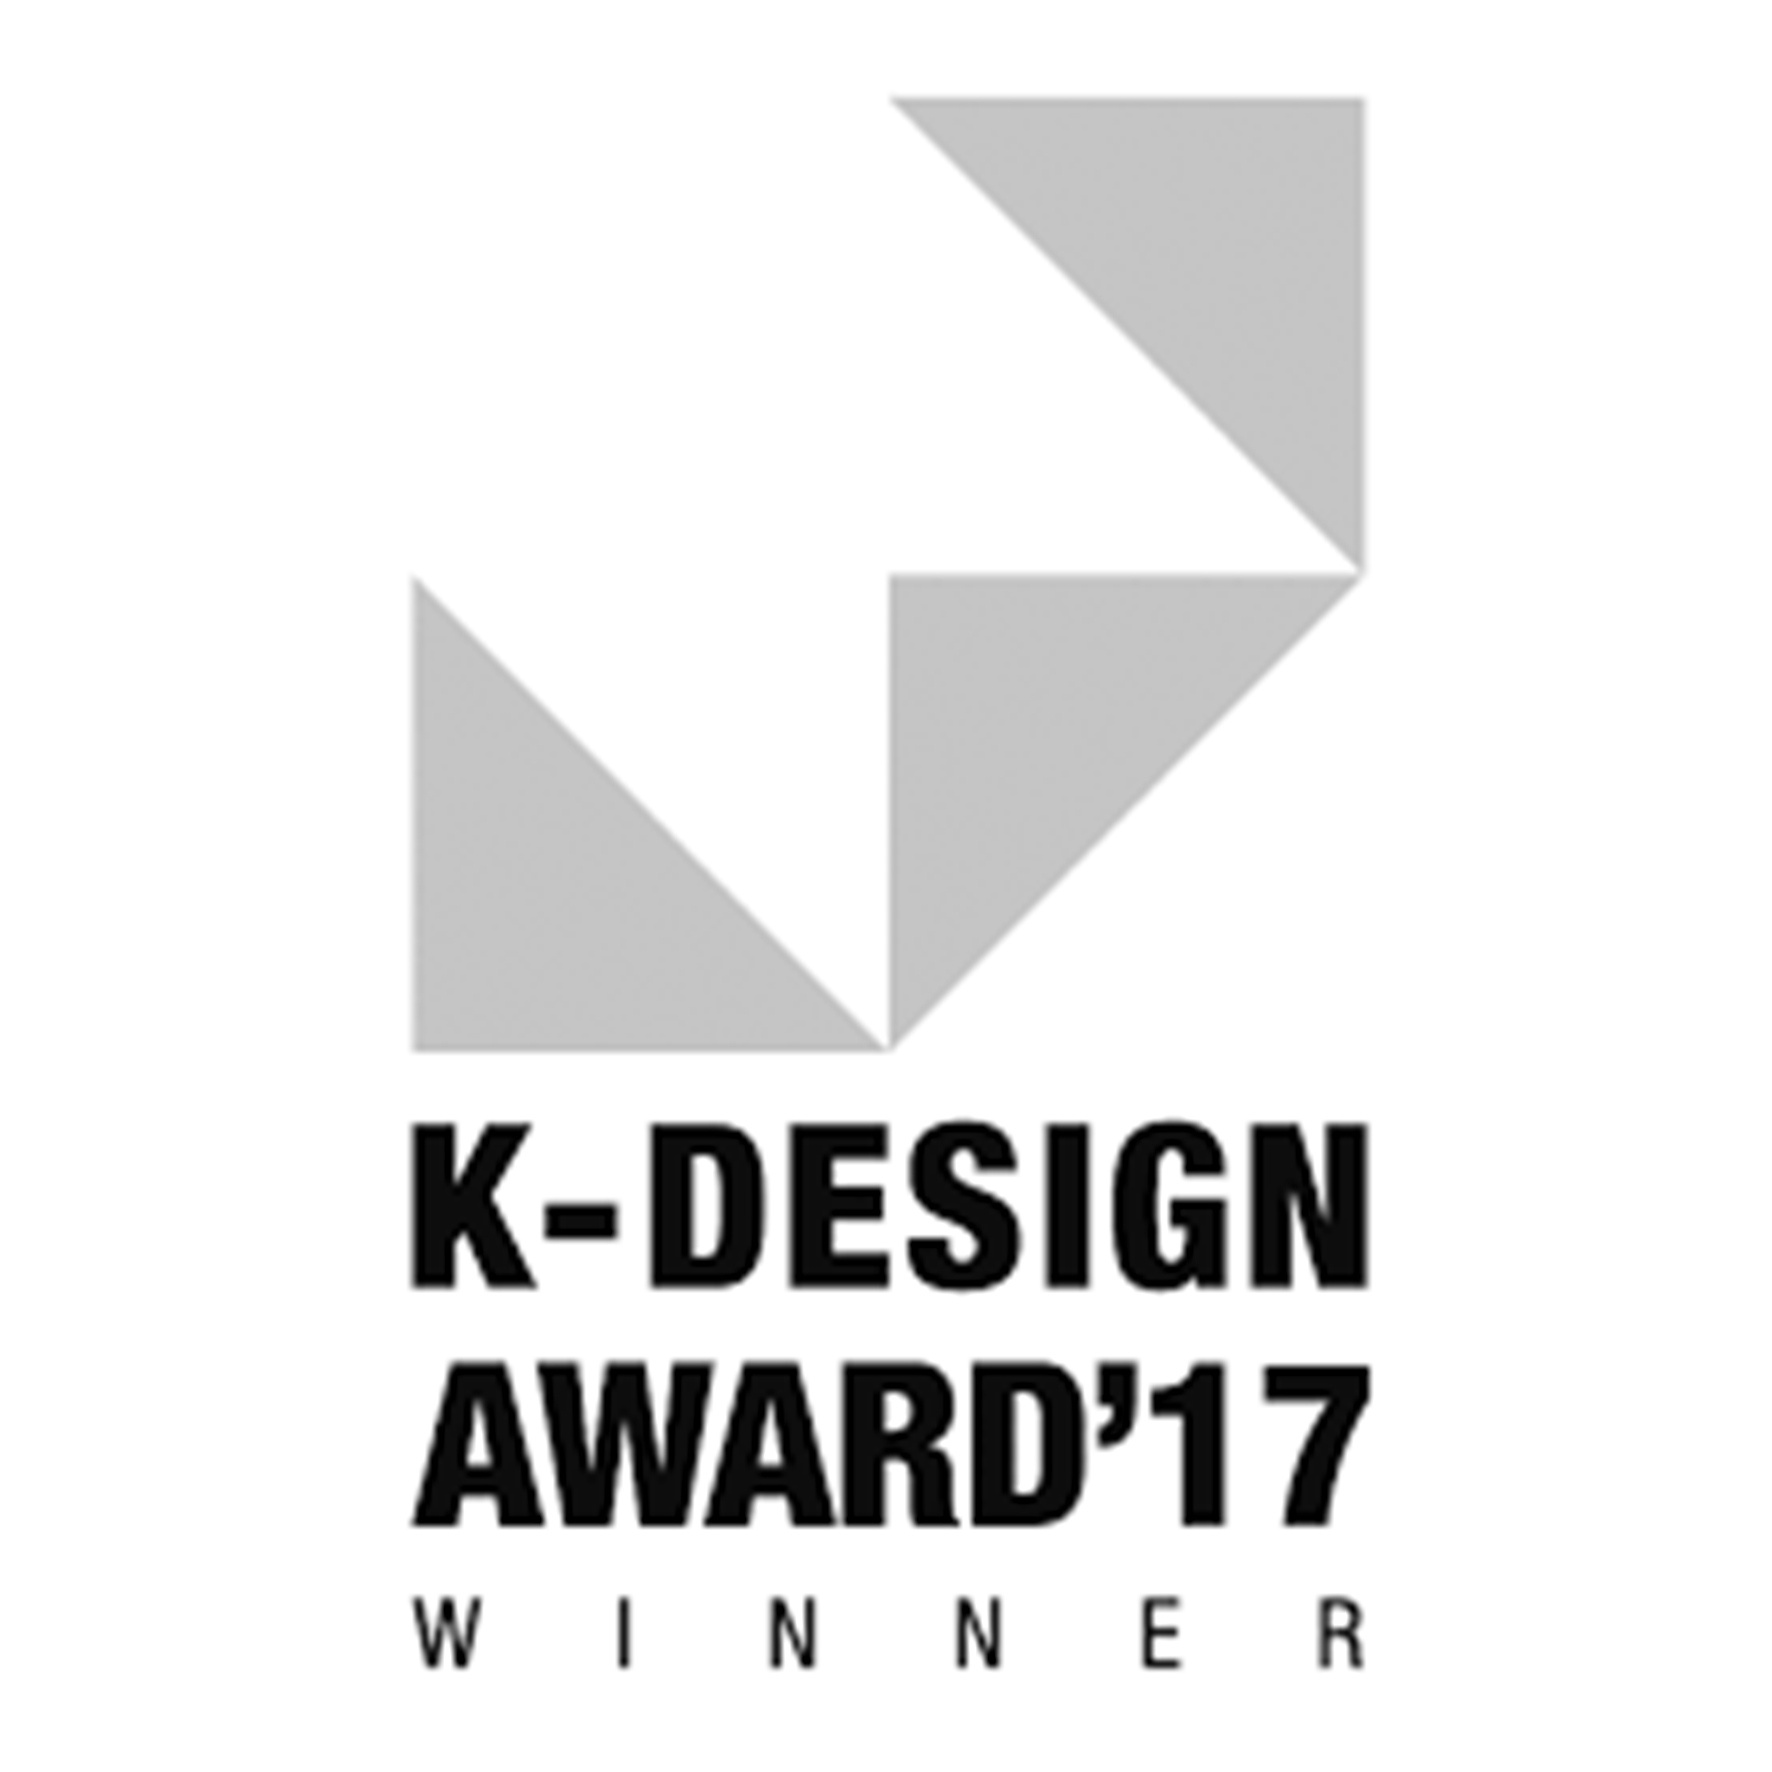 Award Winner, K-Design Award 2017